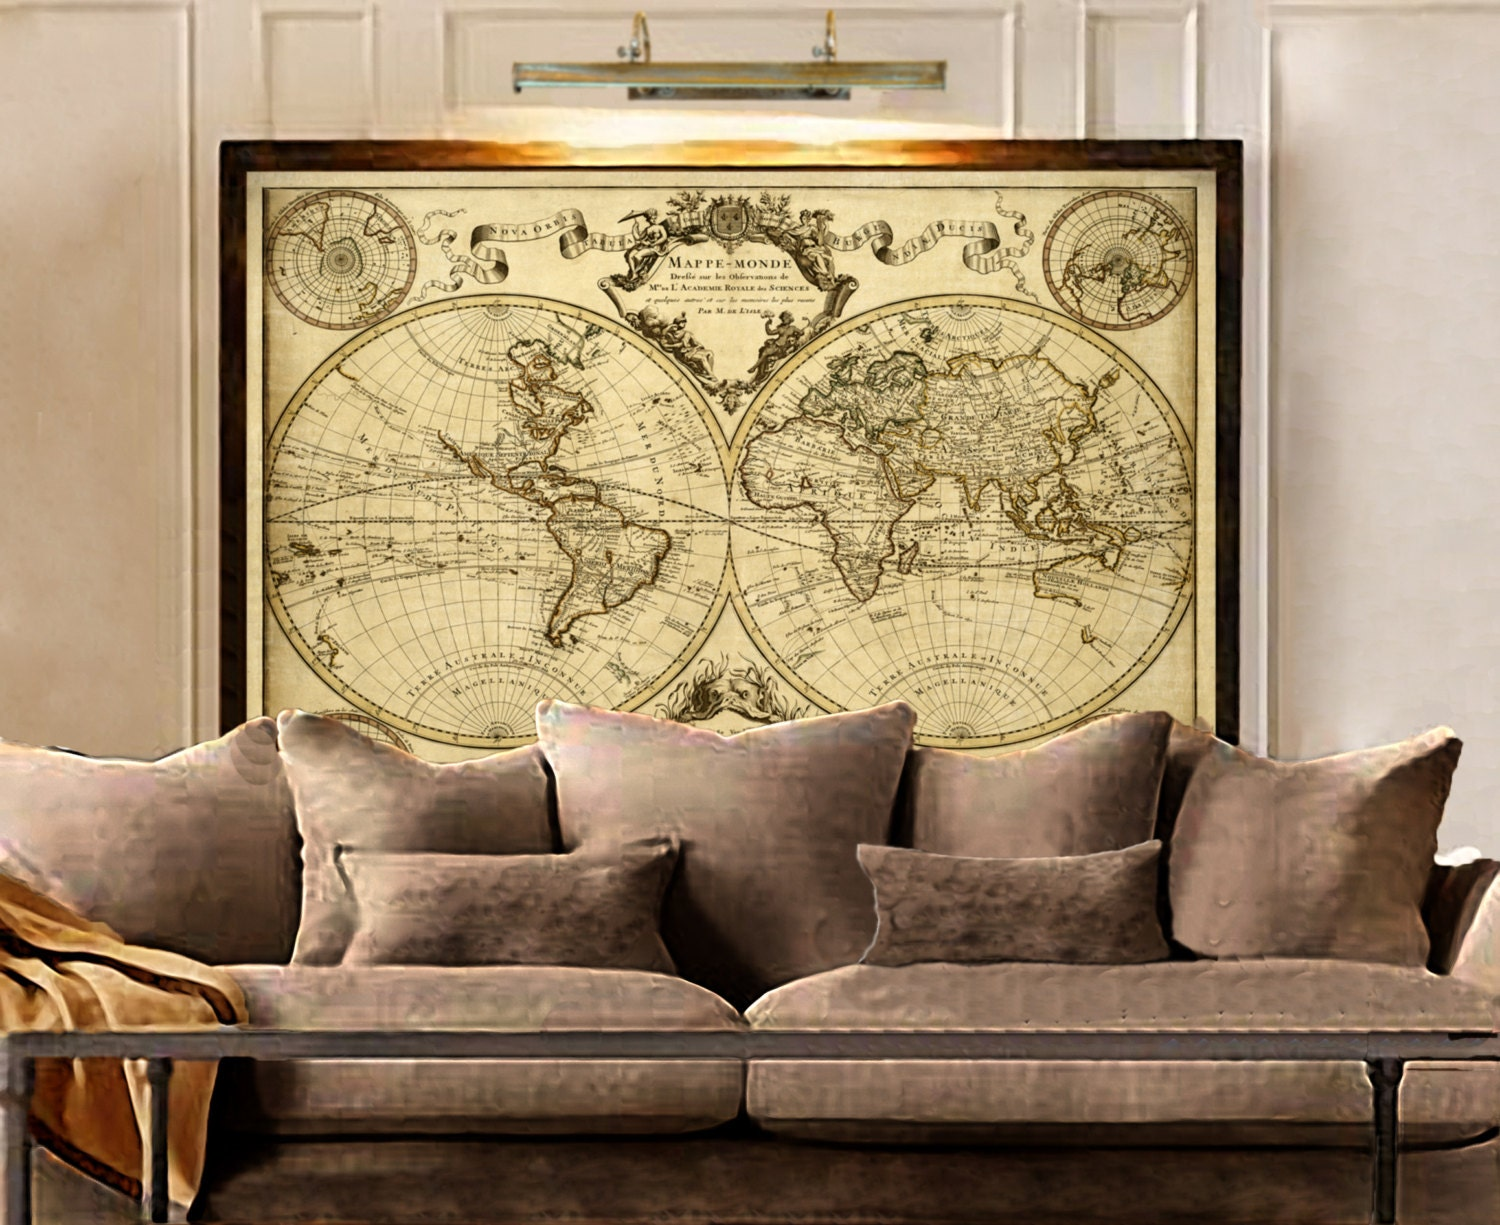 1720 old world map map art historic map antique style world zoom gumiabroncs Images